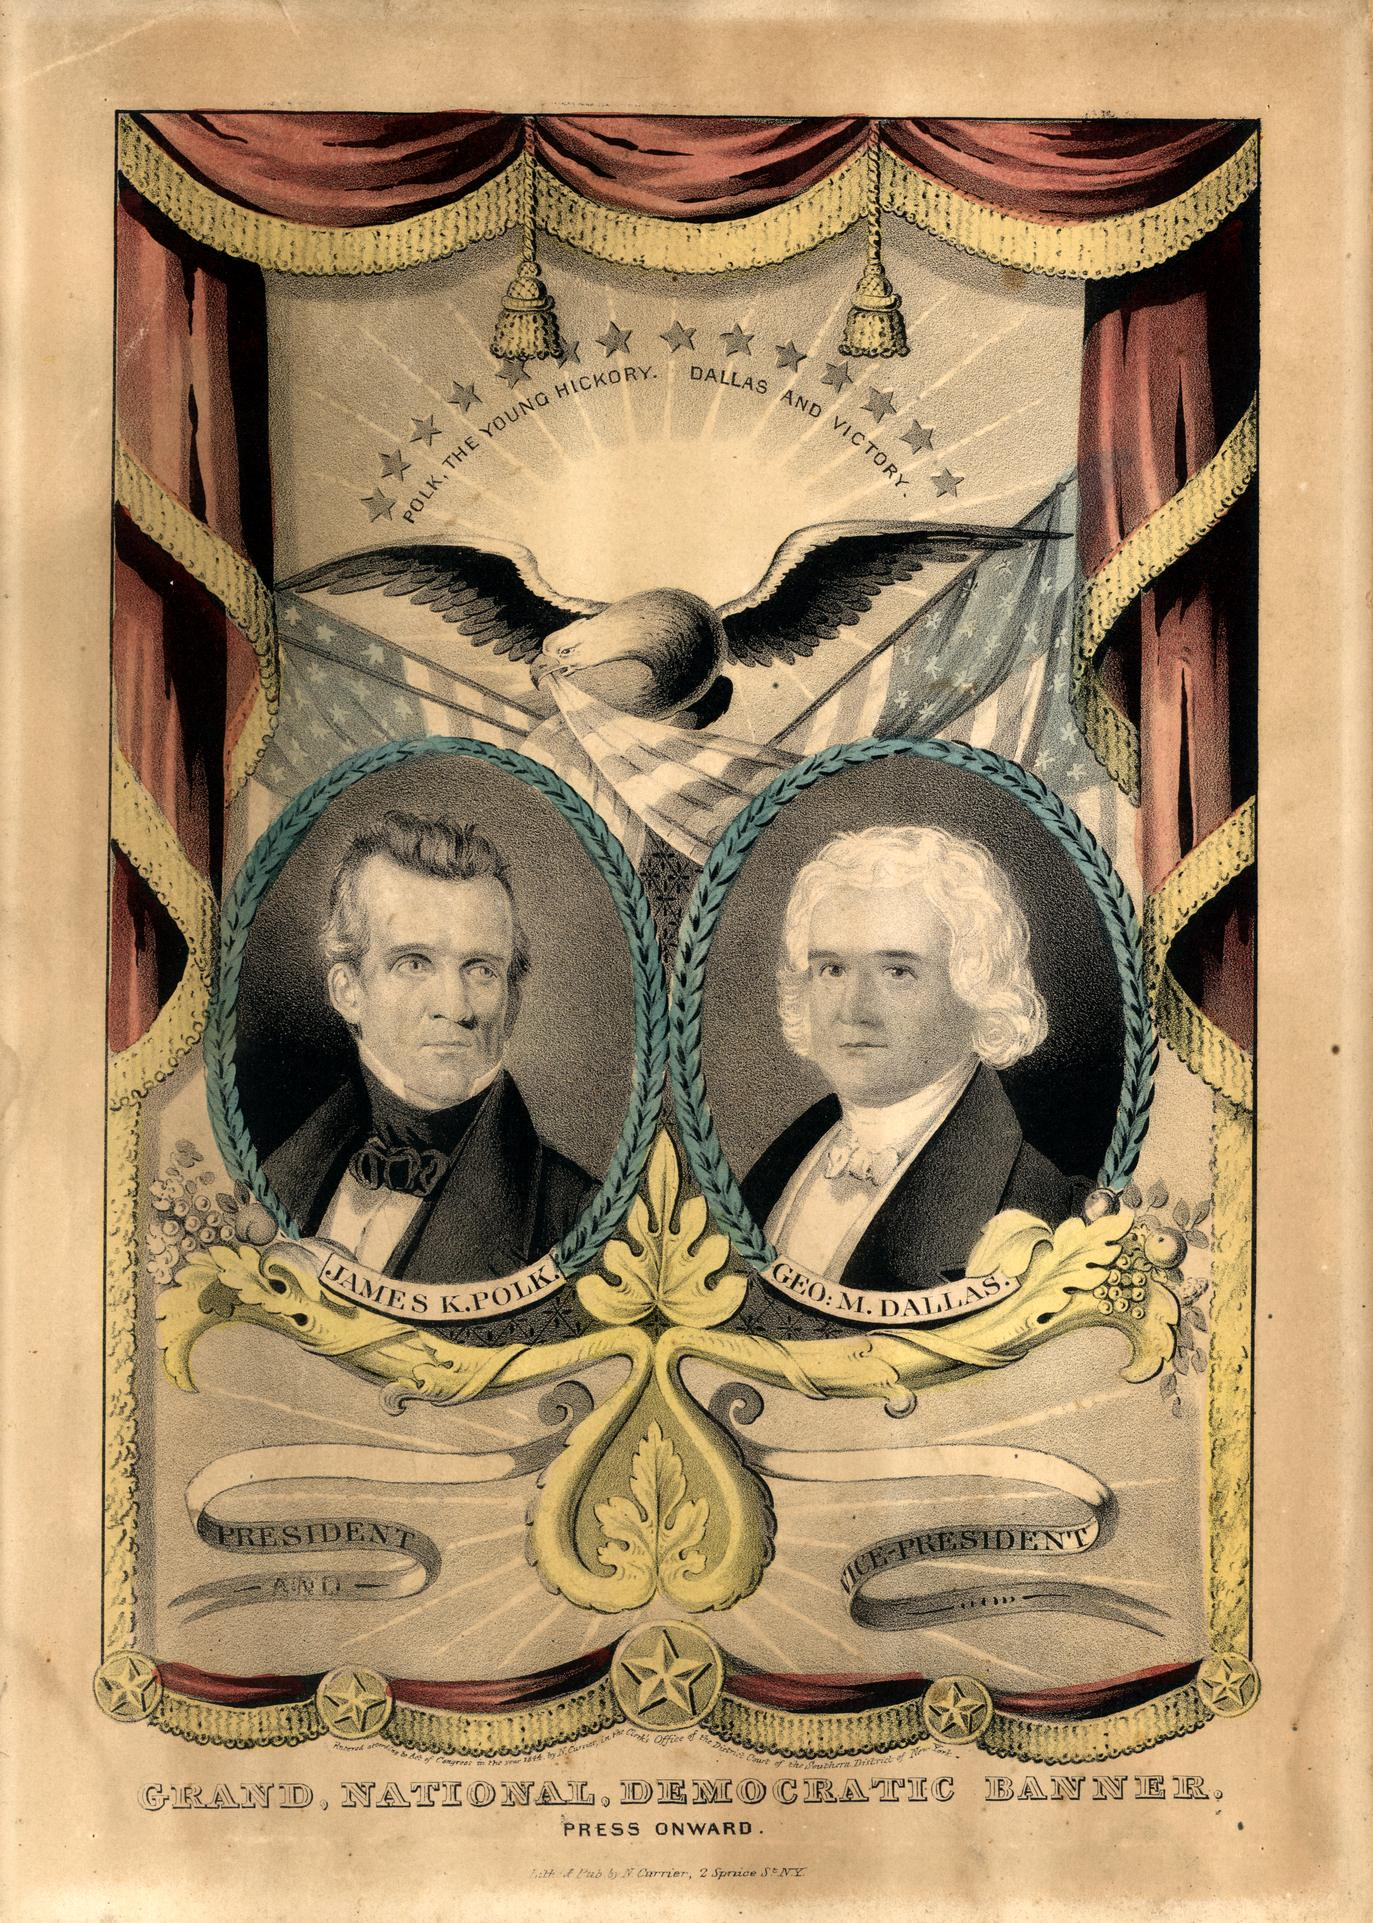 a biography of james knox polk a candidate of the democratic party in 1844 (1844) polk & co going up salt river united he leads a donkey carrying democratic candidates polk and dallas toward salt river, a james knox polk.